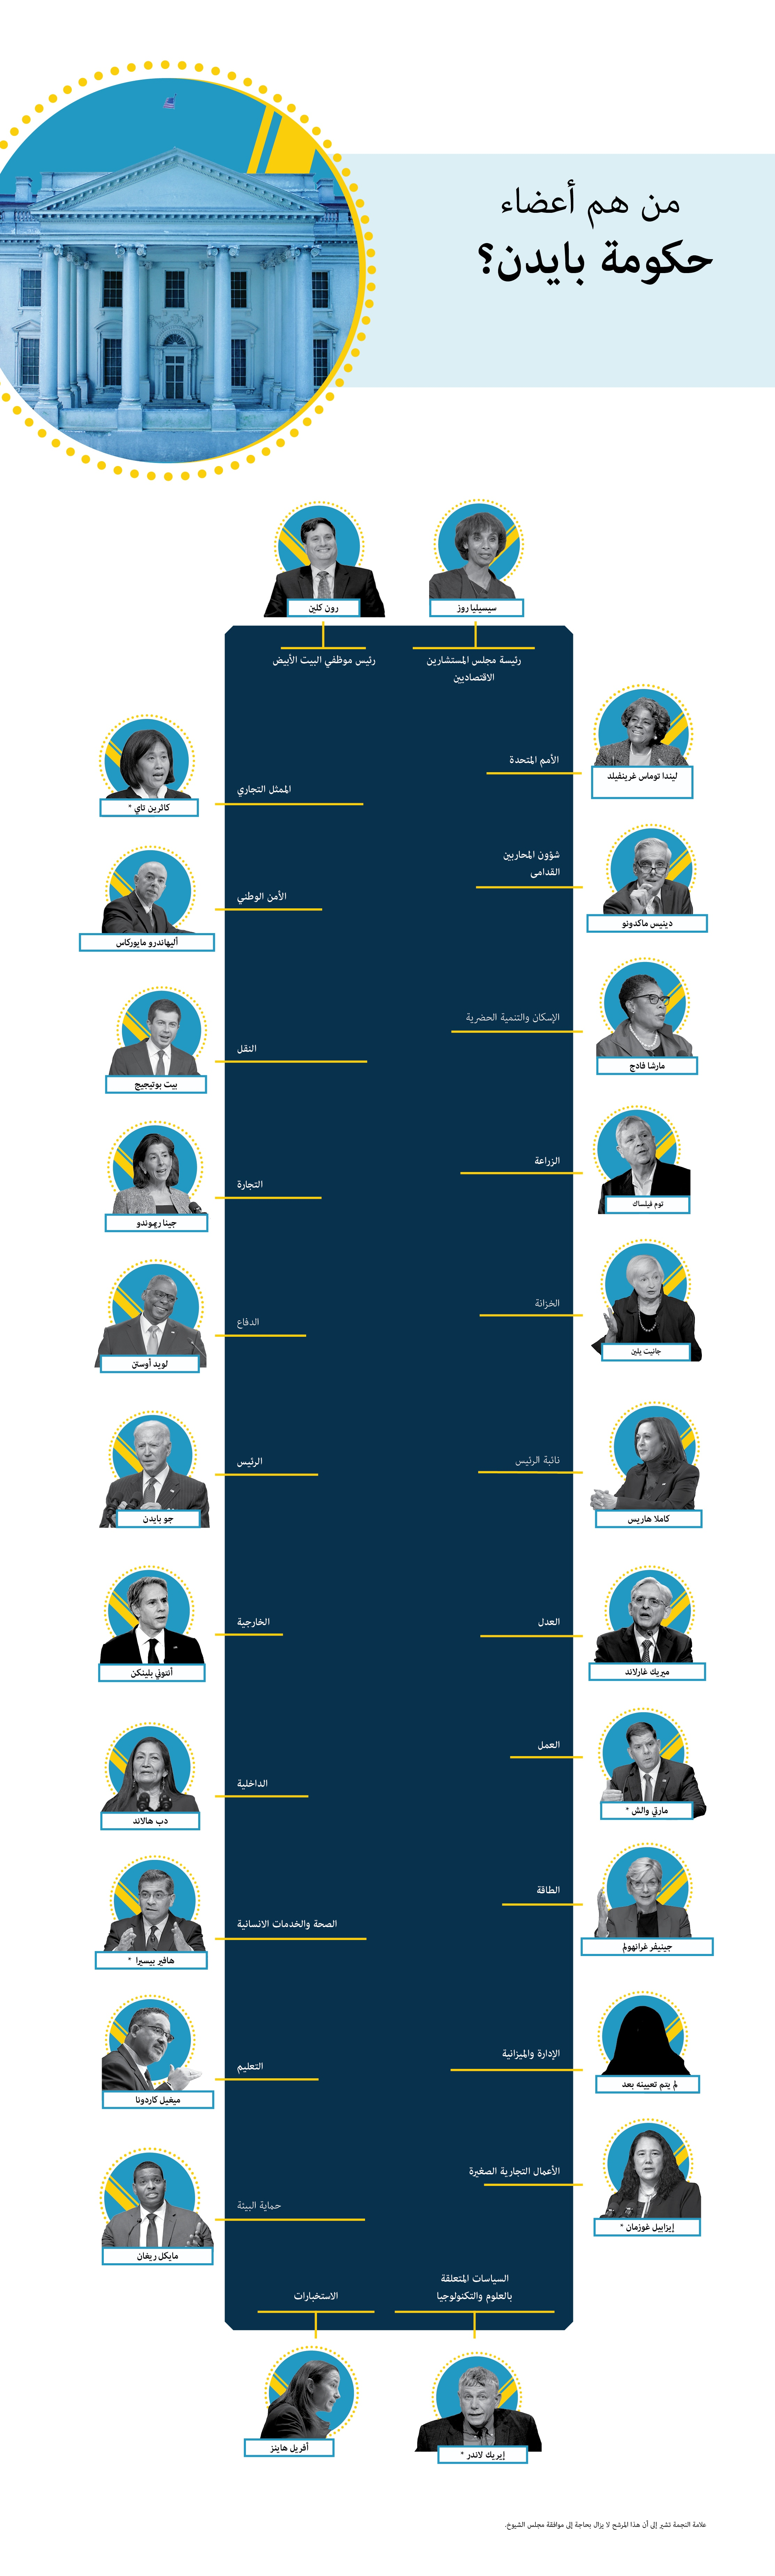 Seating chart for Biden Cabinet members (State Dept./H. Efrem. Photos: © AP Images and Shutterstock)